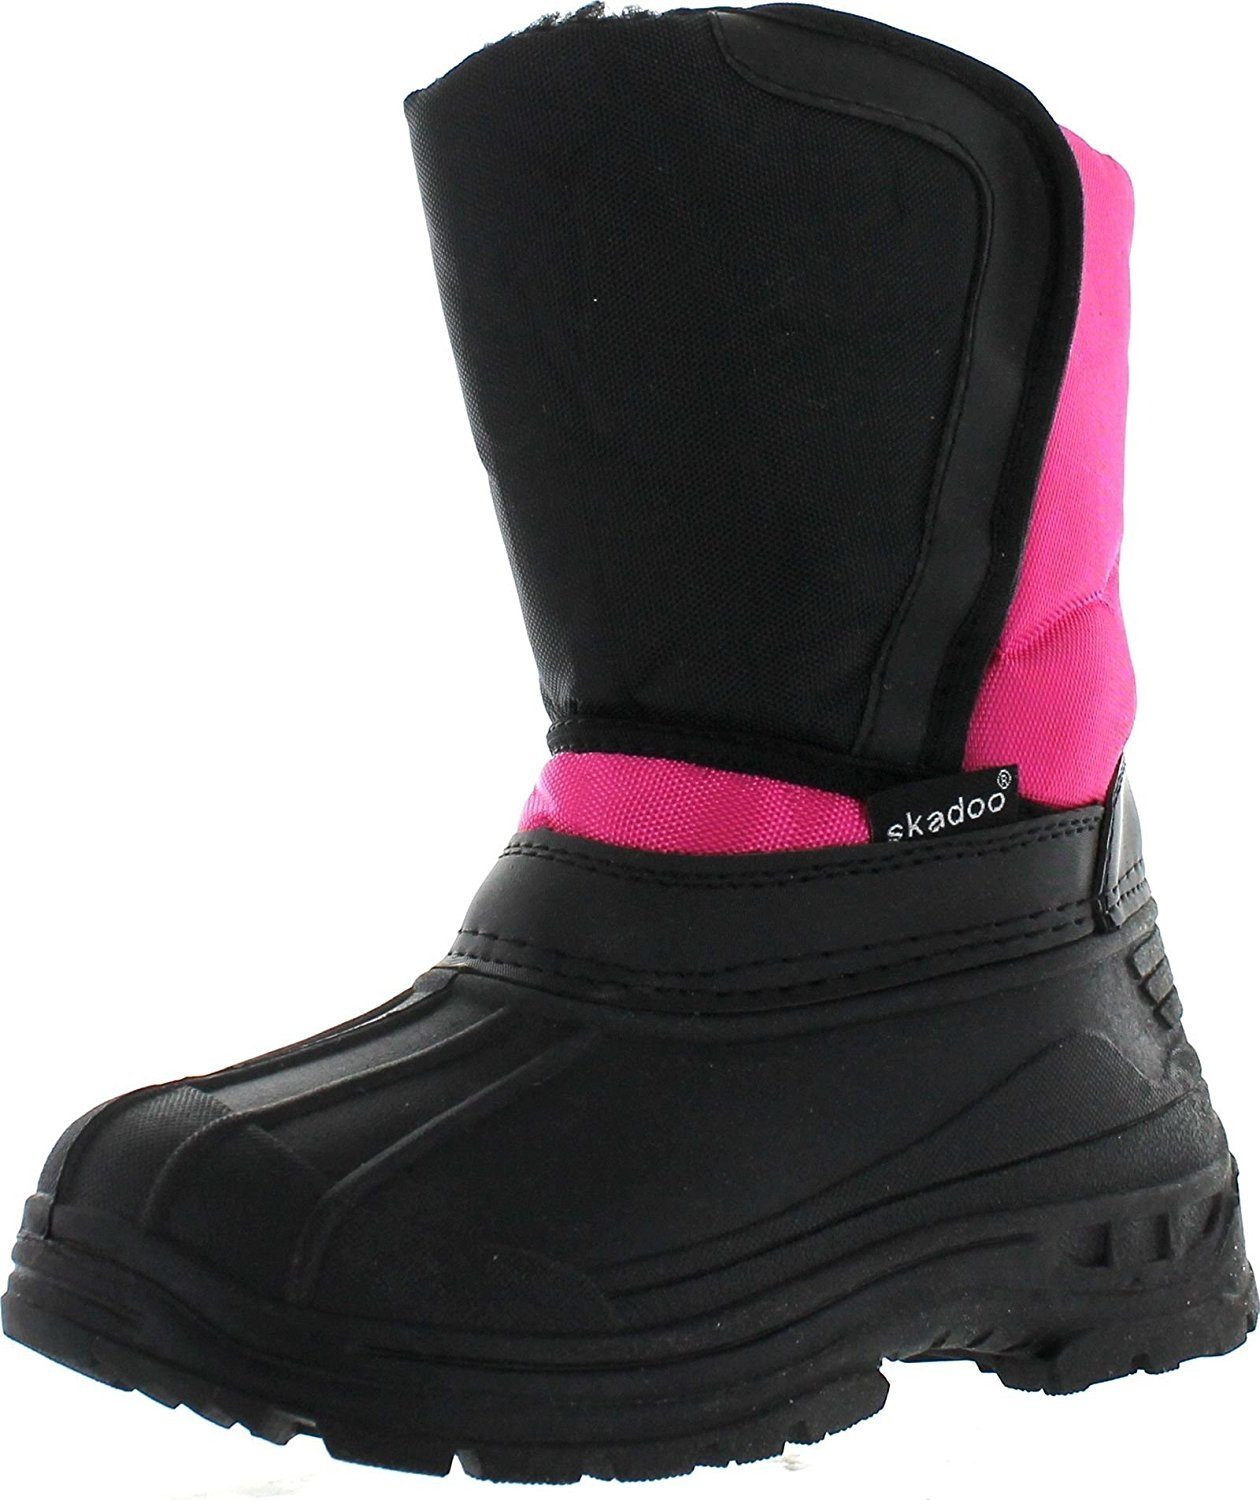 Children's Snow Boots Navy/BLK Sizes Toddler 5 to Big Kid